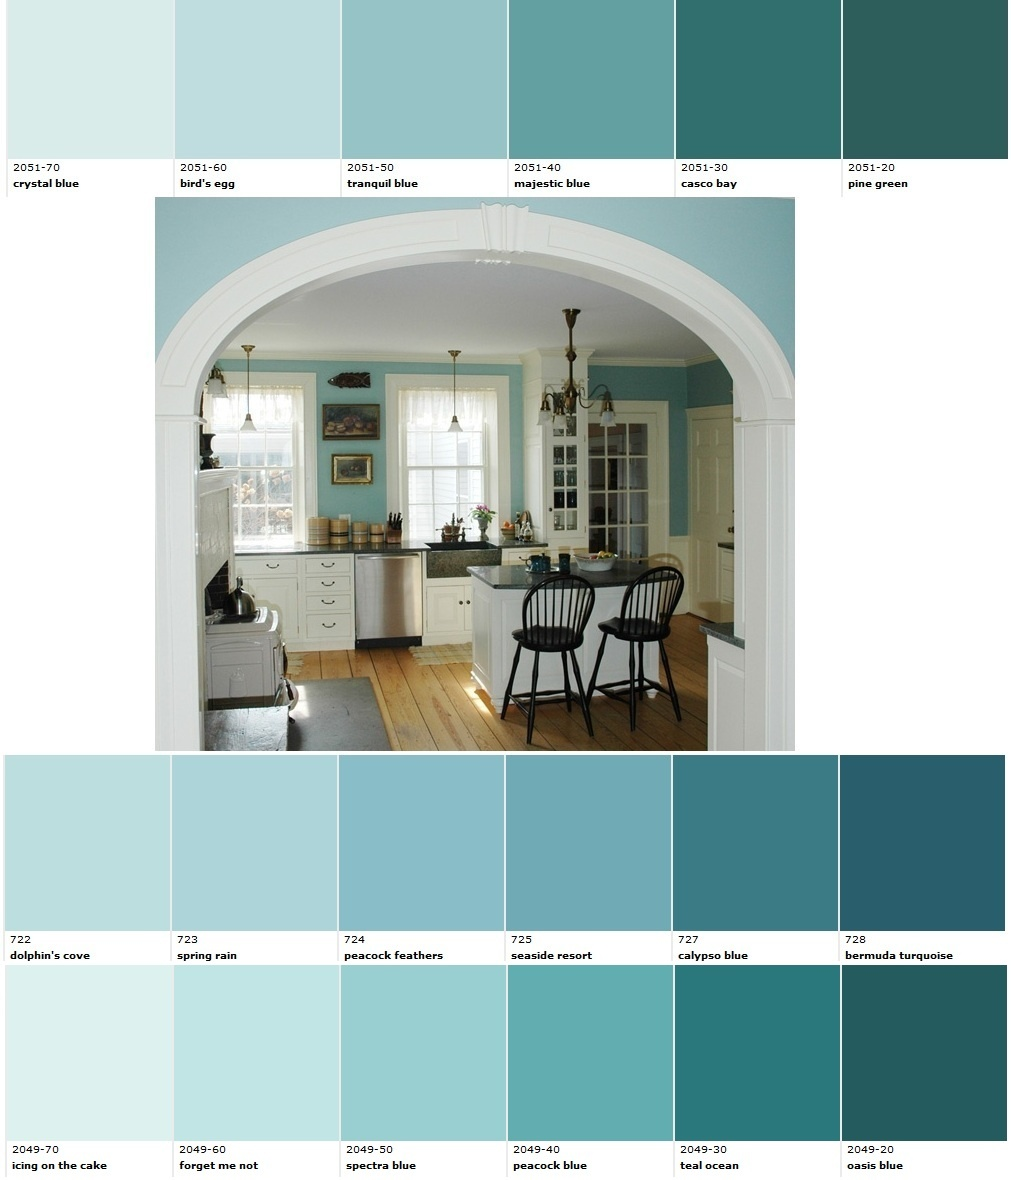 Aquamarine Paint Colors Via Bhg Com: 1000+ Images About Aqua & Turquoise On Pinterest